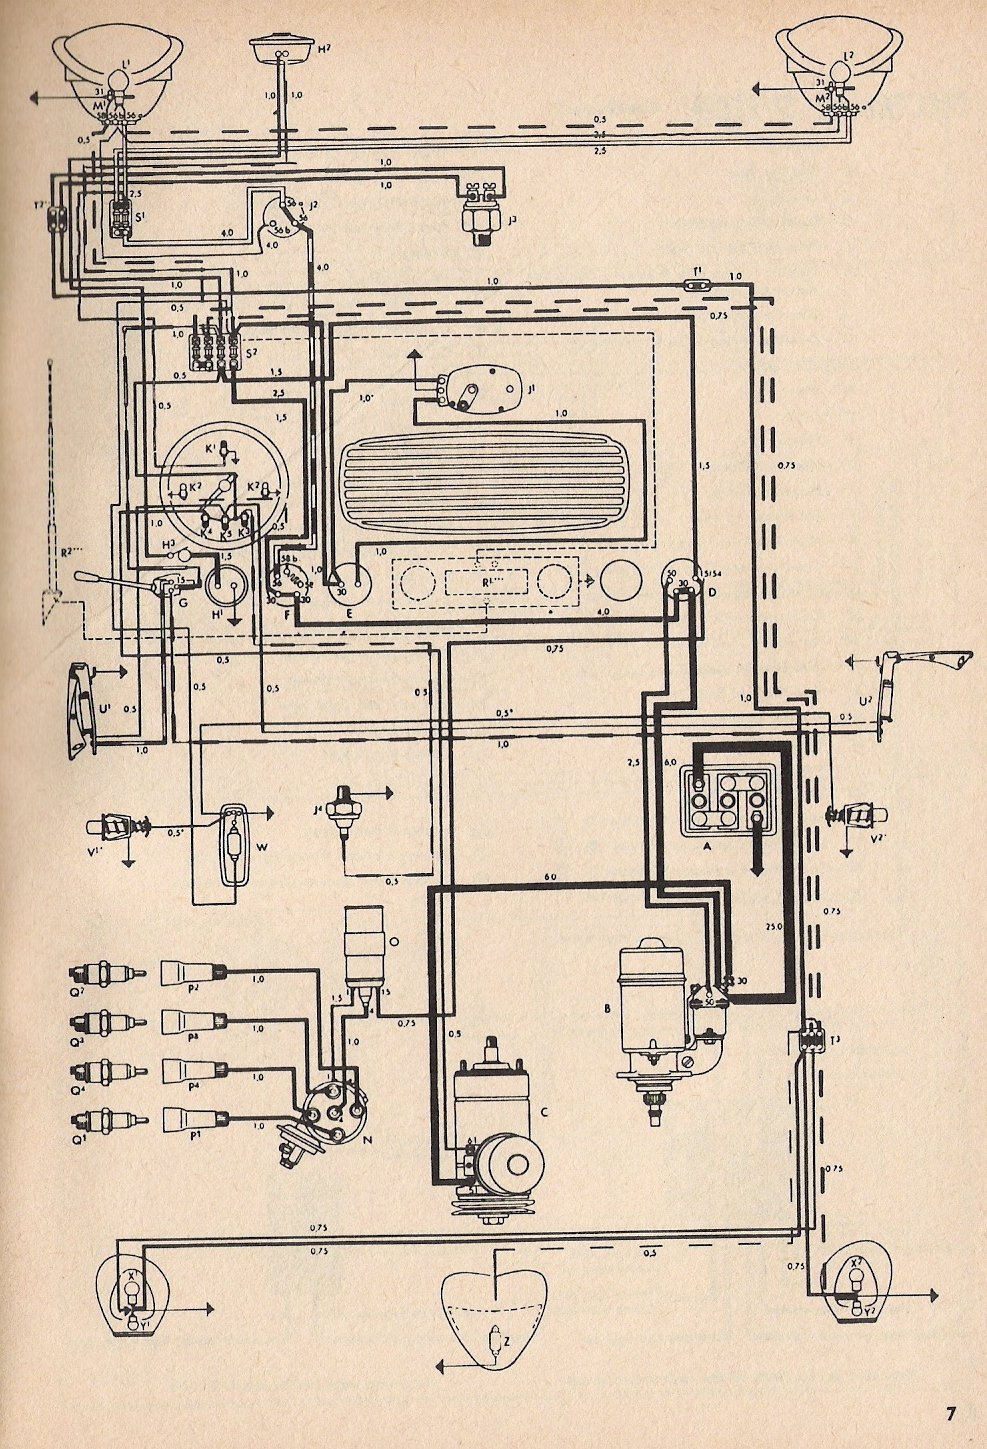 Type 1 Wiring Diagrams 1970 Chevelle Turn Signal Switch Diagram